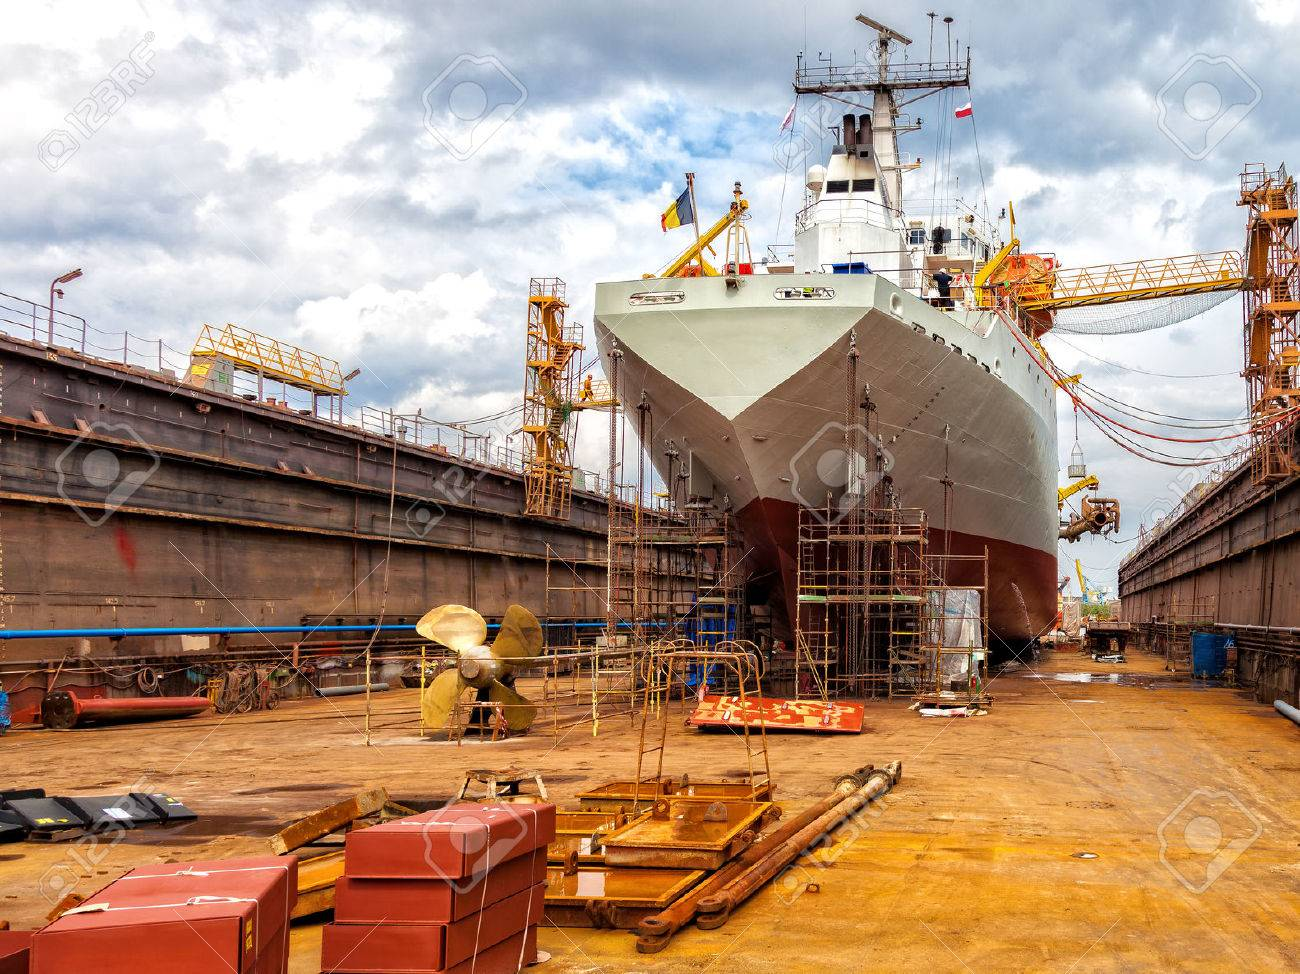 Big ship - rear view with propeller under repair. - 57187837